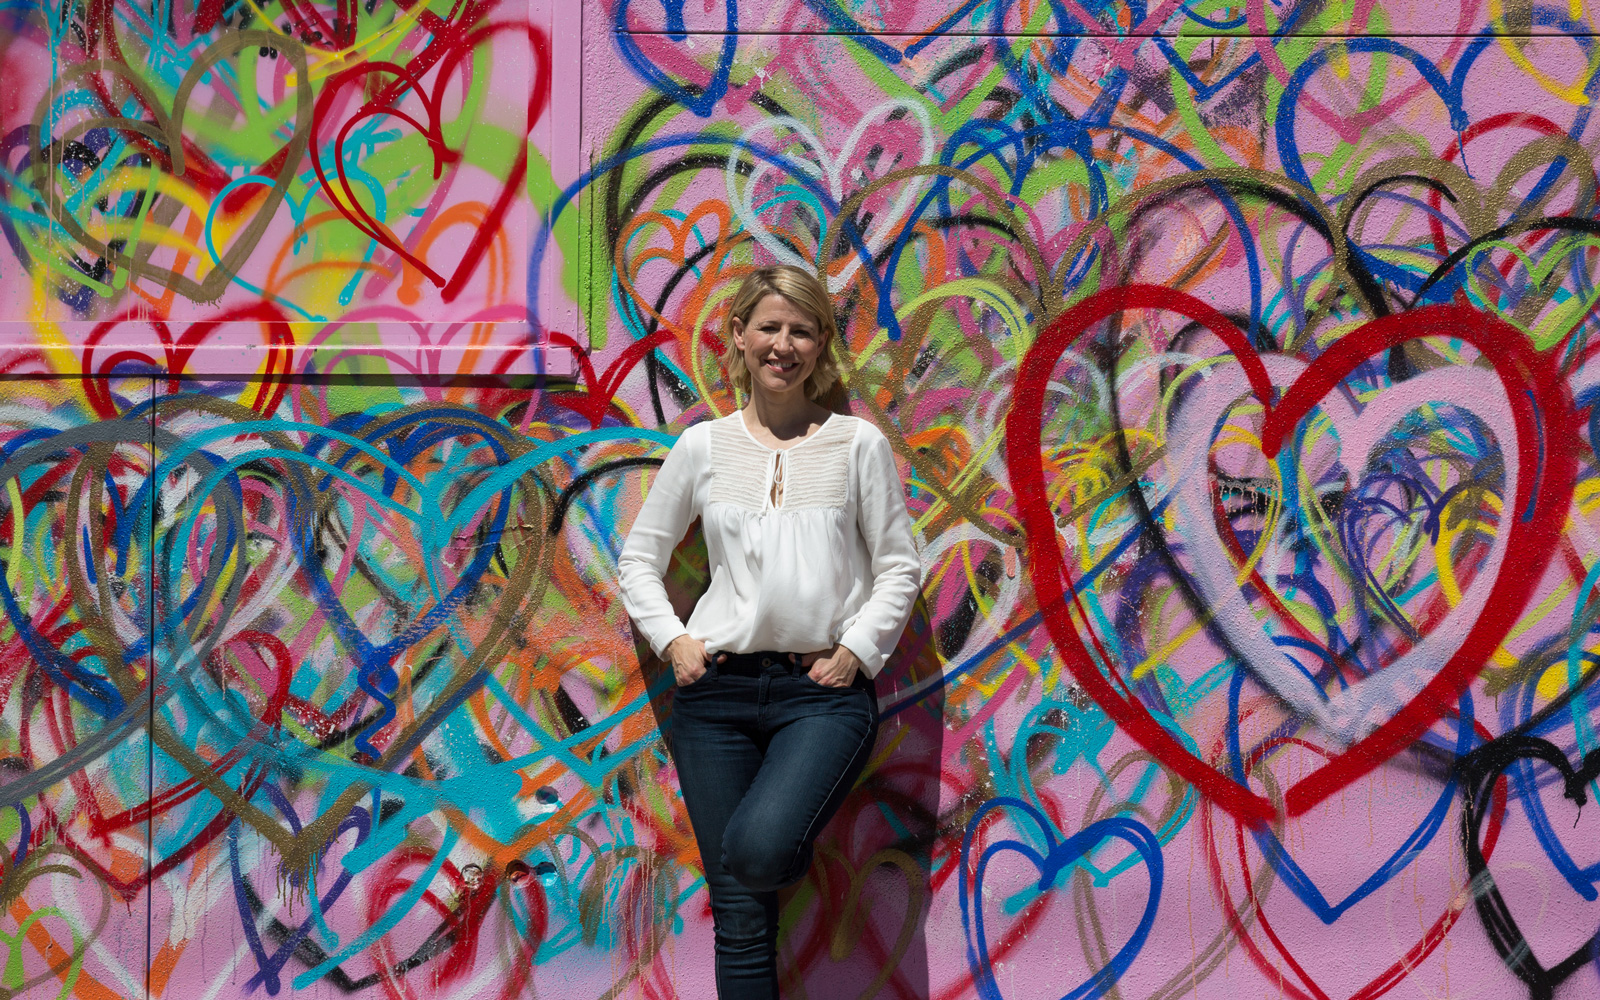 Samantha Brown is traveling her own way.